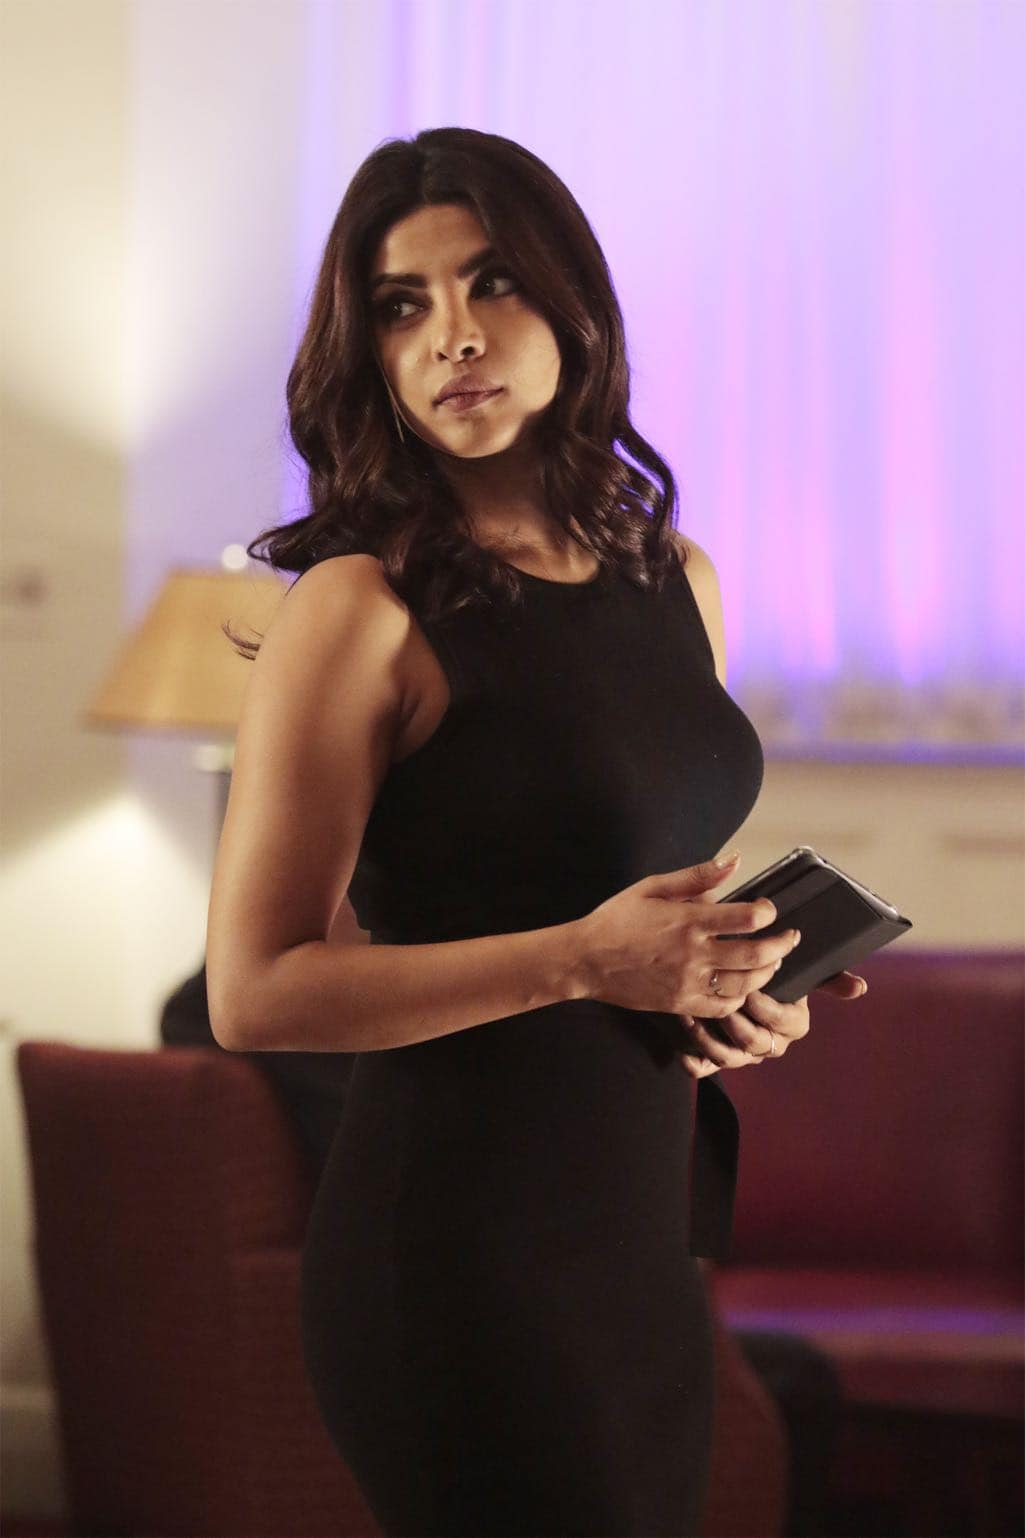 """QUANTICO - """"KMFORGET"""" - At the Farm, Harry is still suspicious of Alex and Ryan, and he's determined to learn more about their plan, while Leon is recruited for a special assignment by Owen. Meanwhile, in the future, Alex continues to run from the terrorists but faces her toughest challenge yet when the terrorists corner her on """"Quantico,"""" airing SUNDAY, OCTOBER 30 (10:00-11:00 p.m. EDT), on the ABC Television Network. (ABC/Giovanni Rufino) PRIYANKA CHOPRA"""